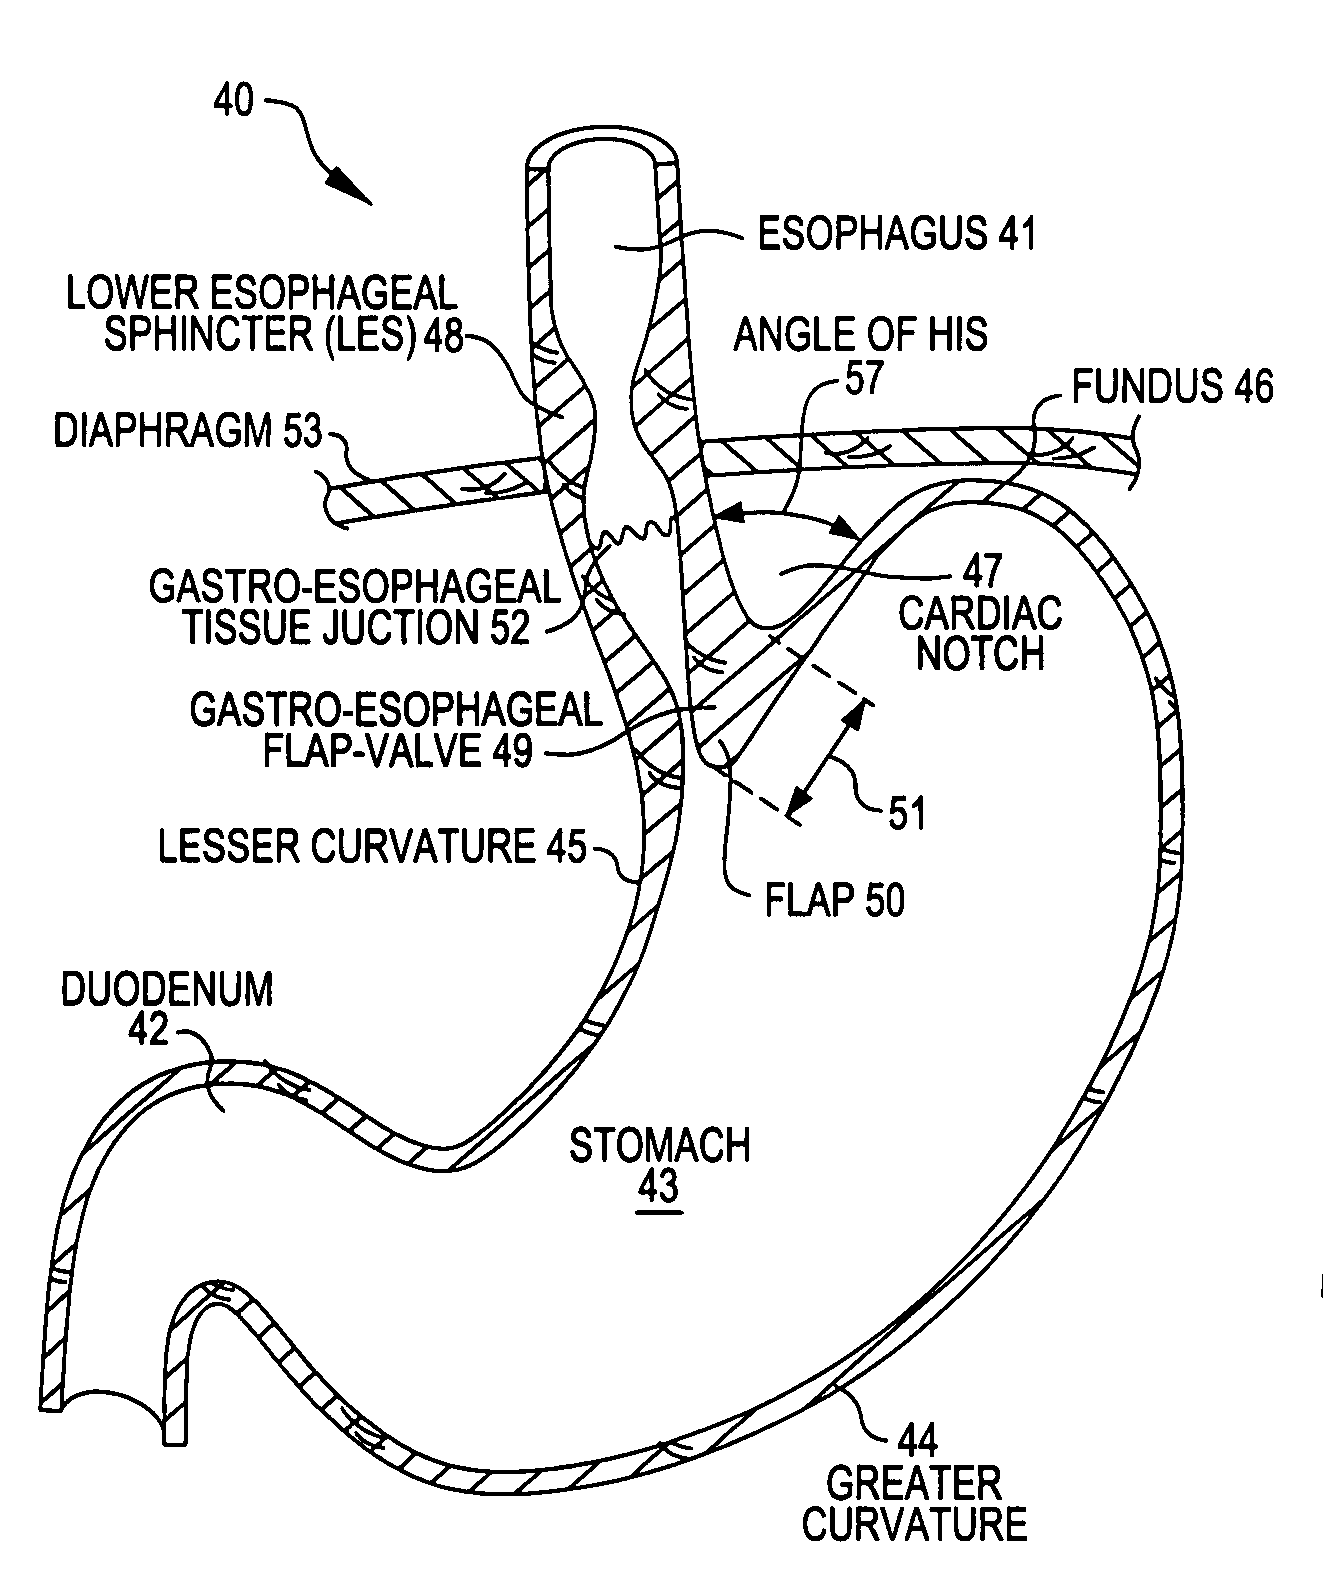 patente us20080281337 - transoral endoscopic gastroesophageal flap, Human Body